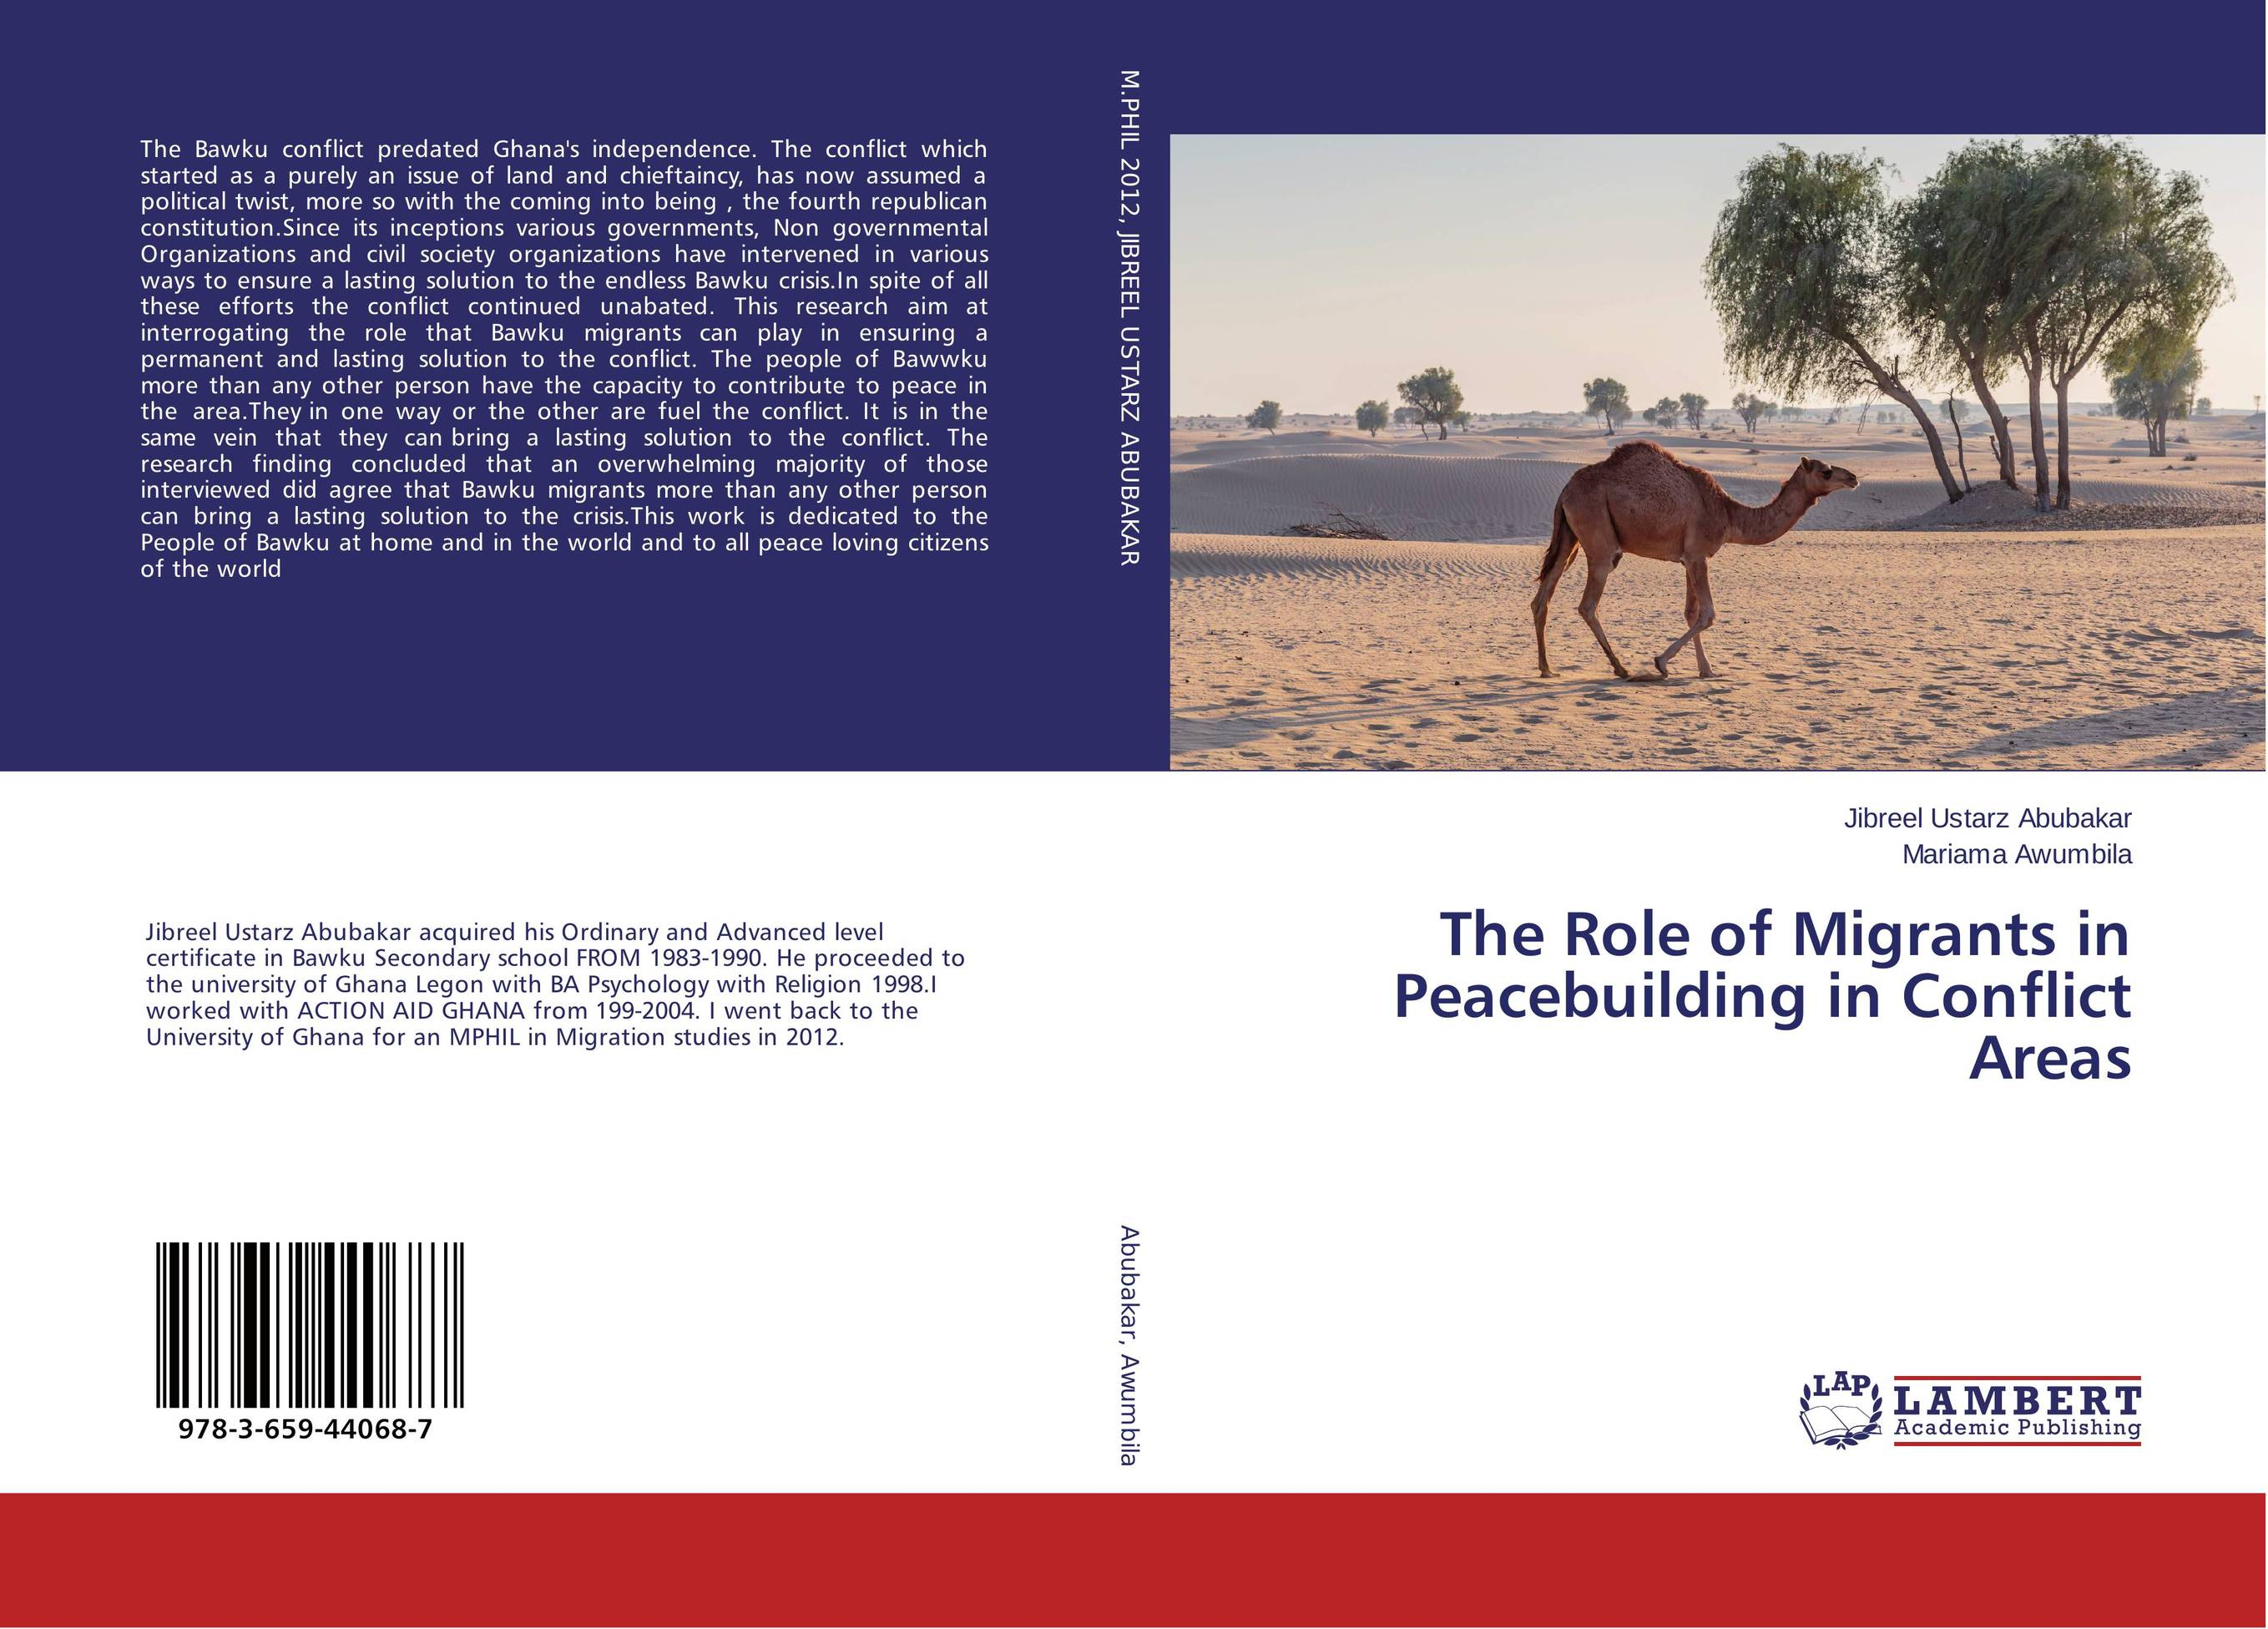 The Role of Migrants in Peacebuilding in Conflict Areas